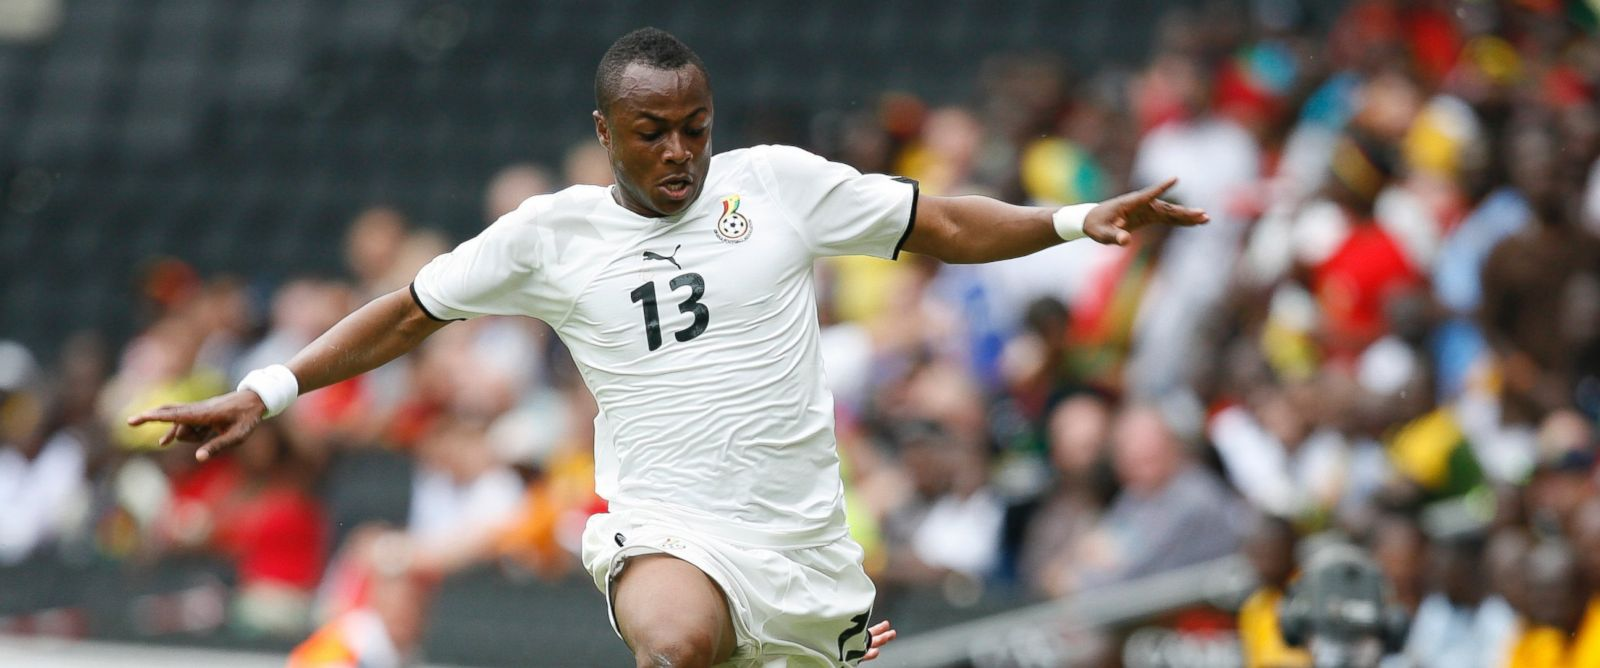 PHOTO: Ghanas national football team player Andre Ayew